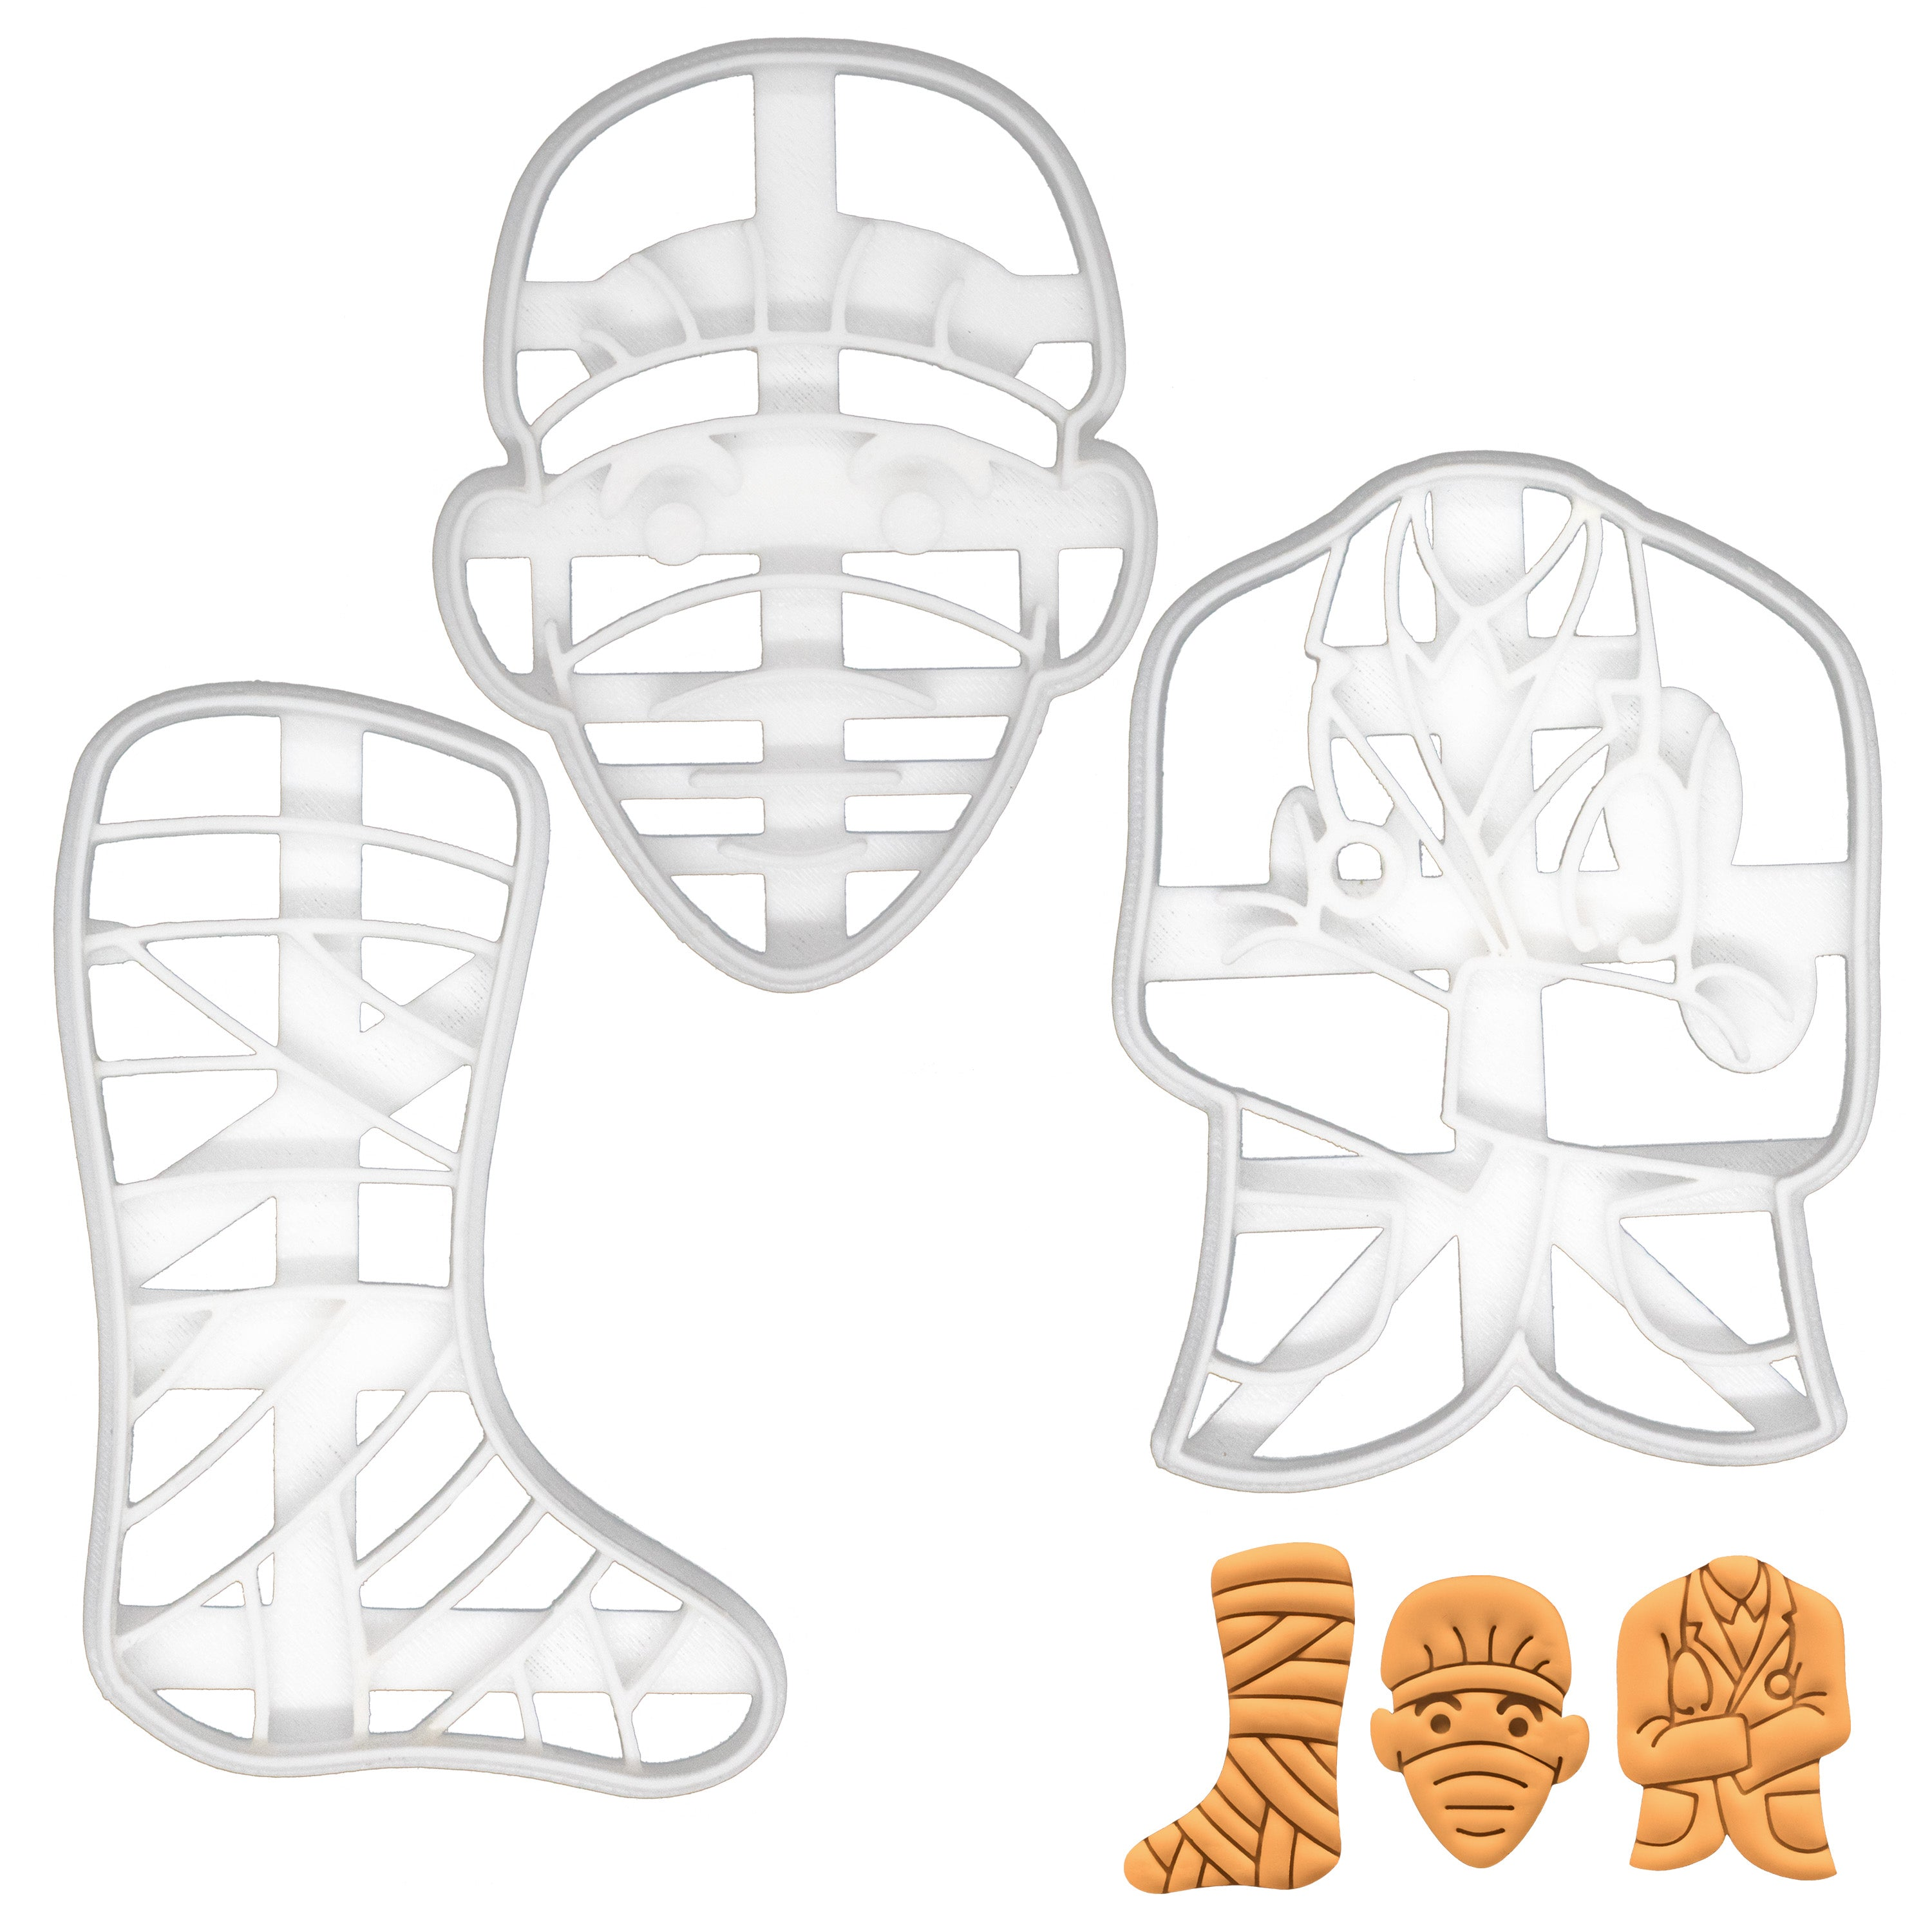 set of 3 doctor themed cookie cutters - surgeon face, leg cast, doctor coat